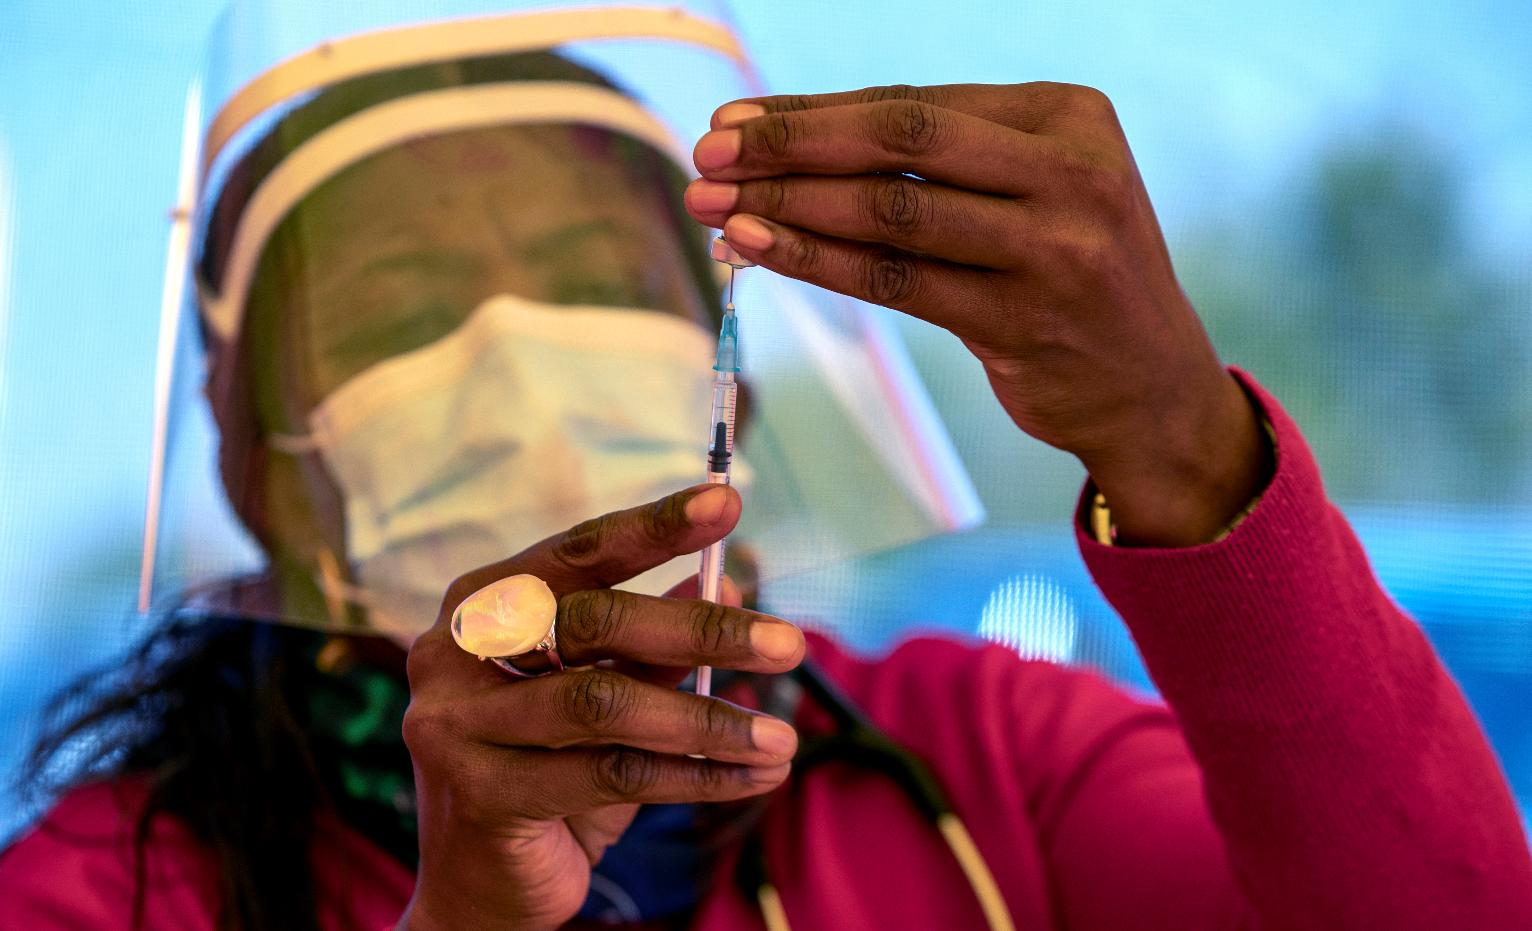 South Africa Returns to Stricter Lockdown as Coronavirus Cases 'Surge Again'